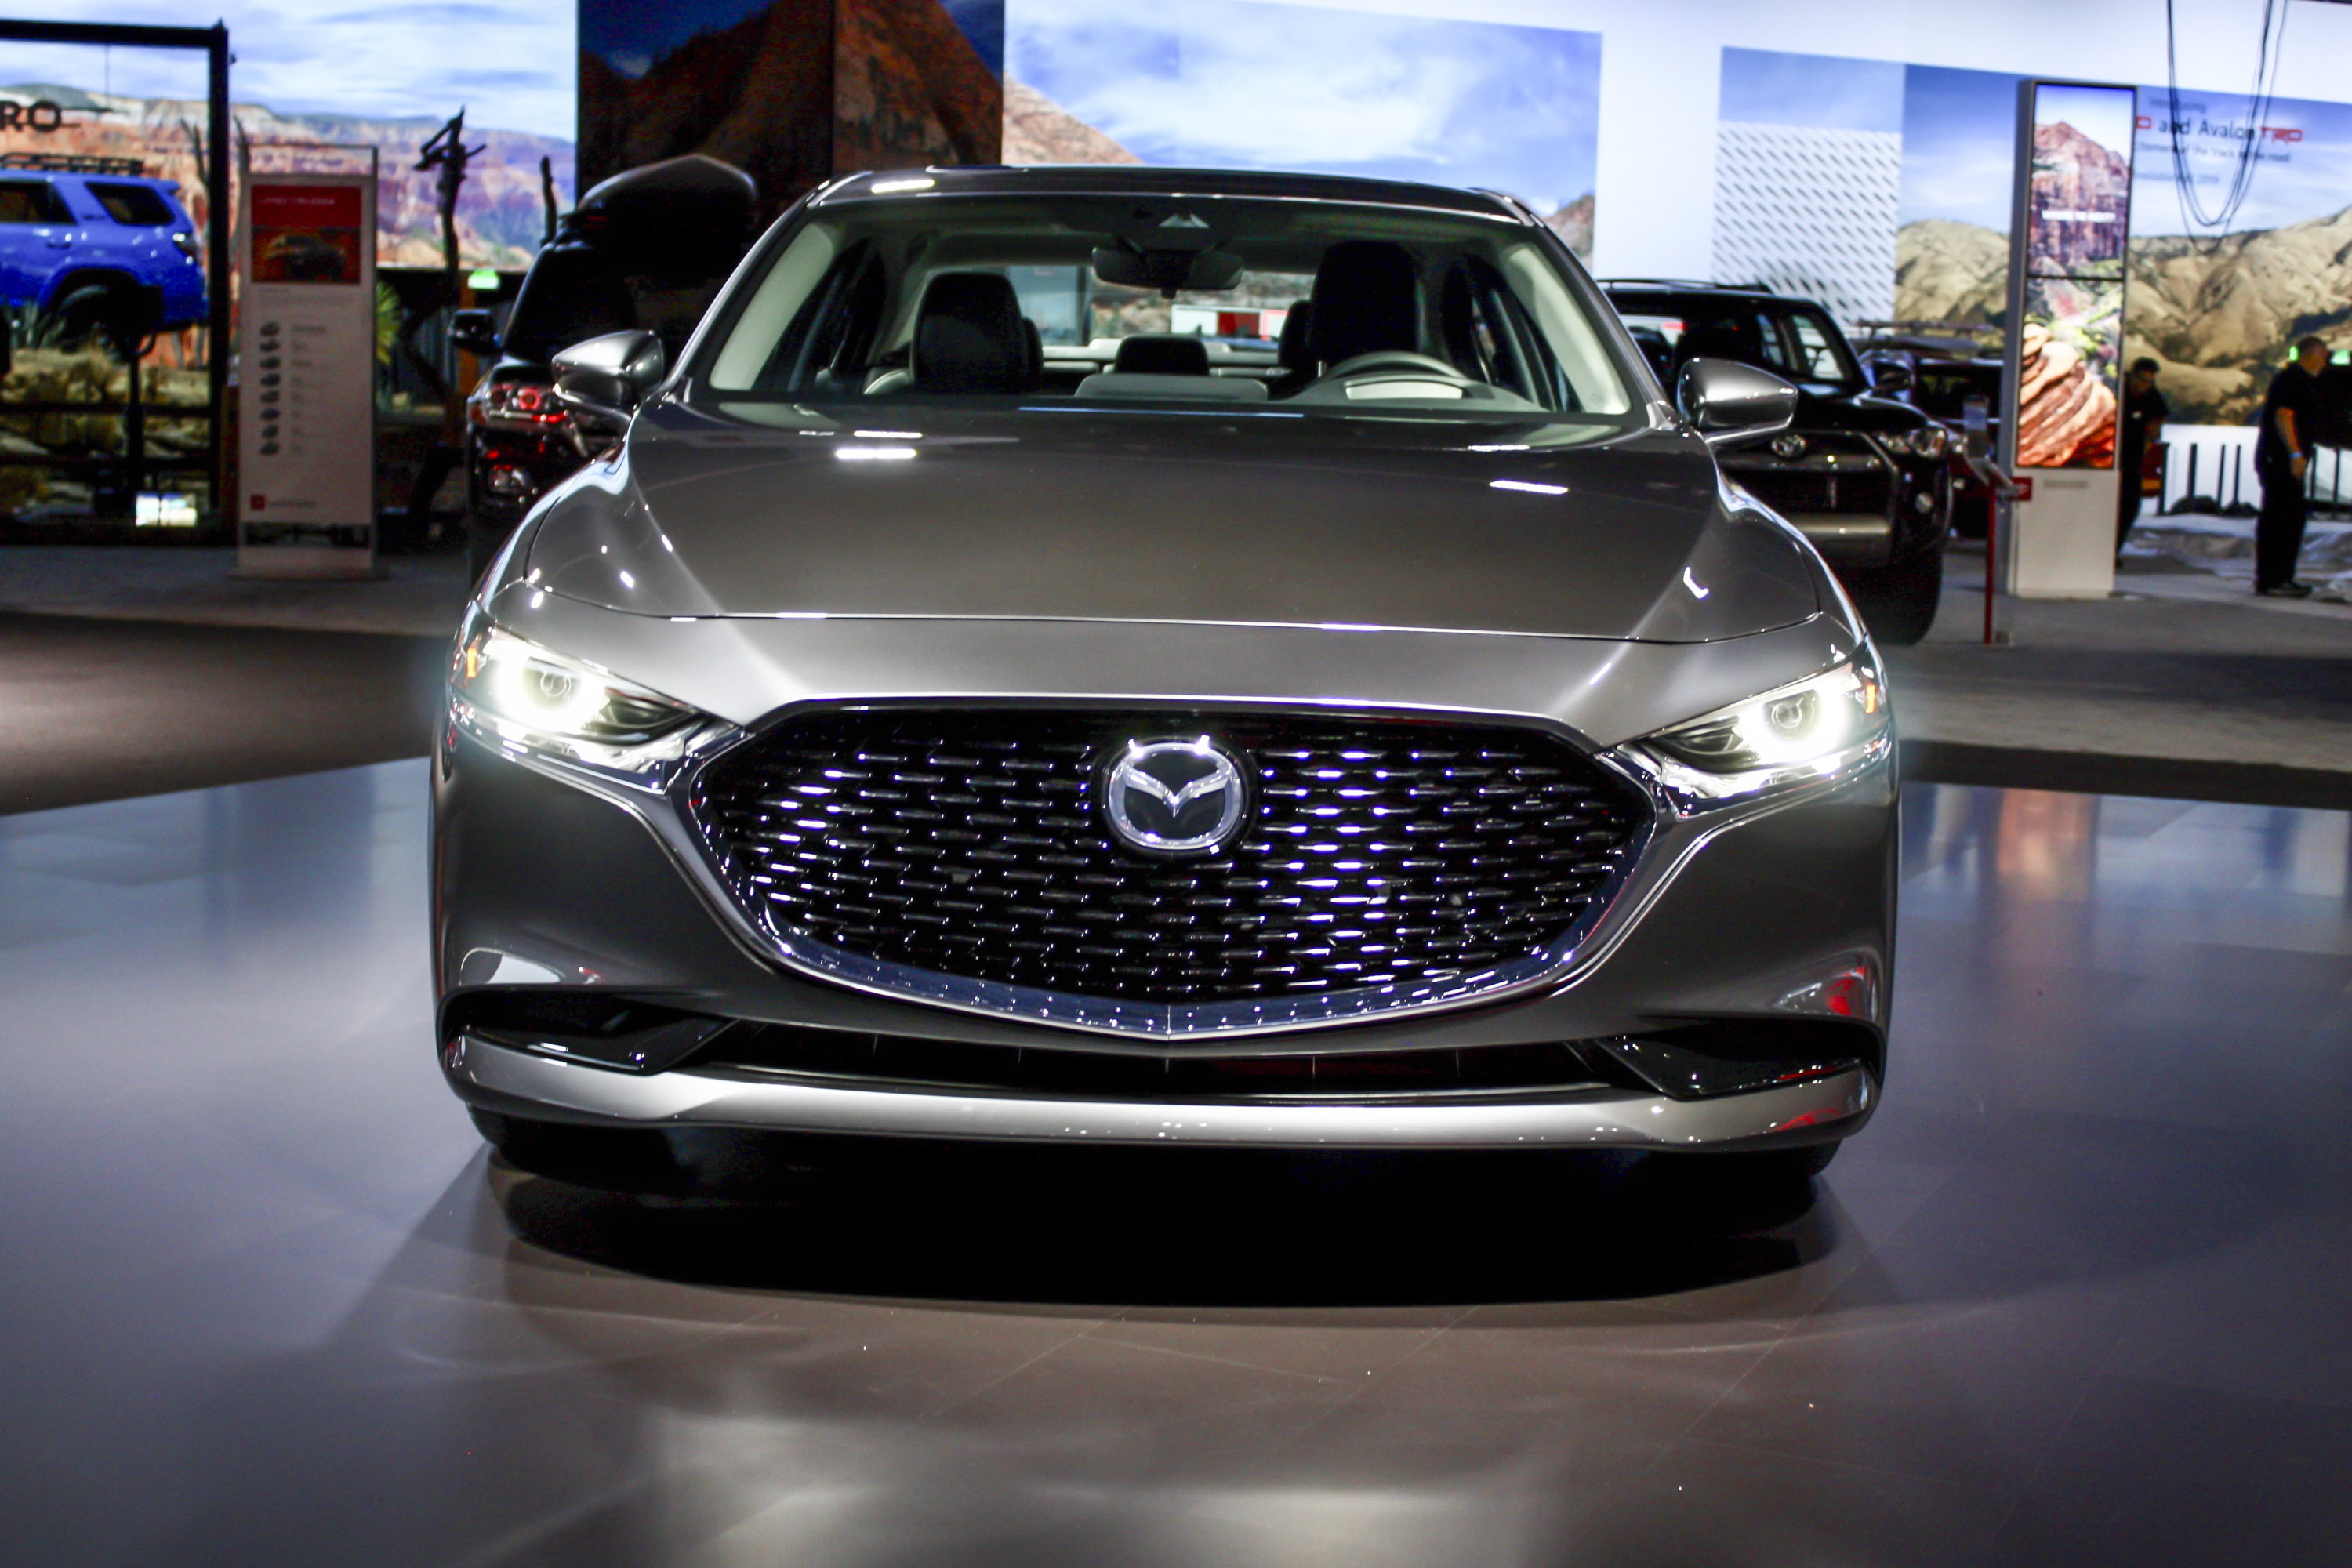 Mazdas Program Manager Exposes 2019 Mazda 3 Development Secrets Old Buick Parts Suppliers Top Speed